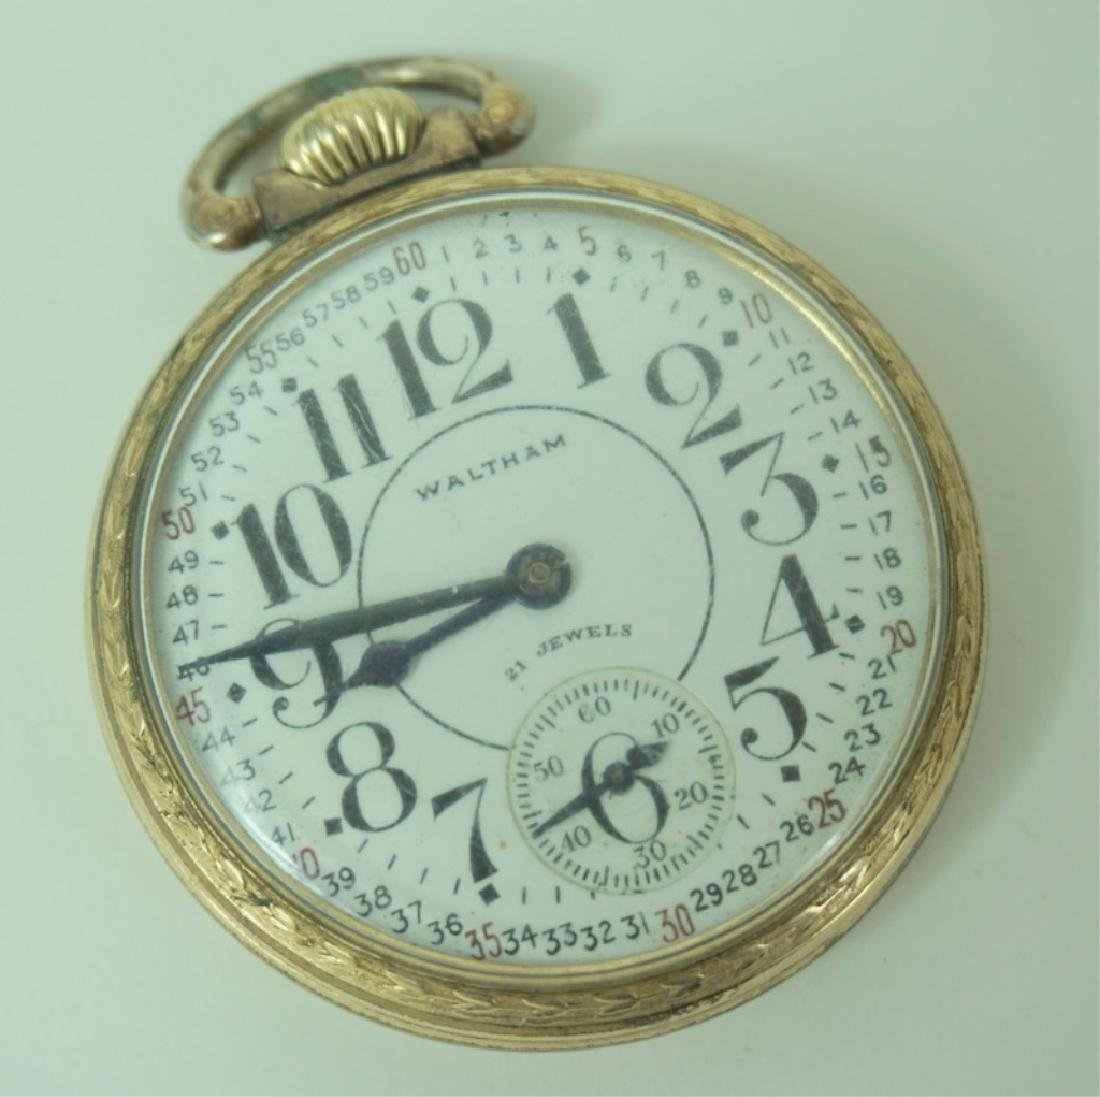 Antique Waltham Gold Plated Railroad Watch